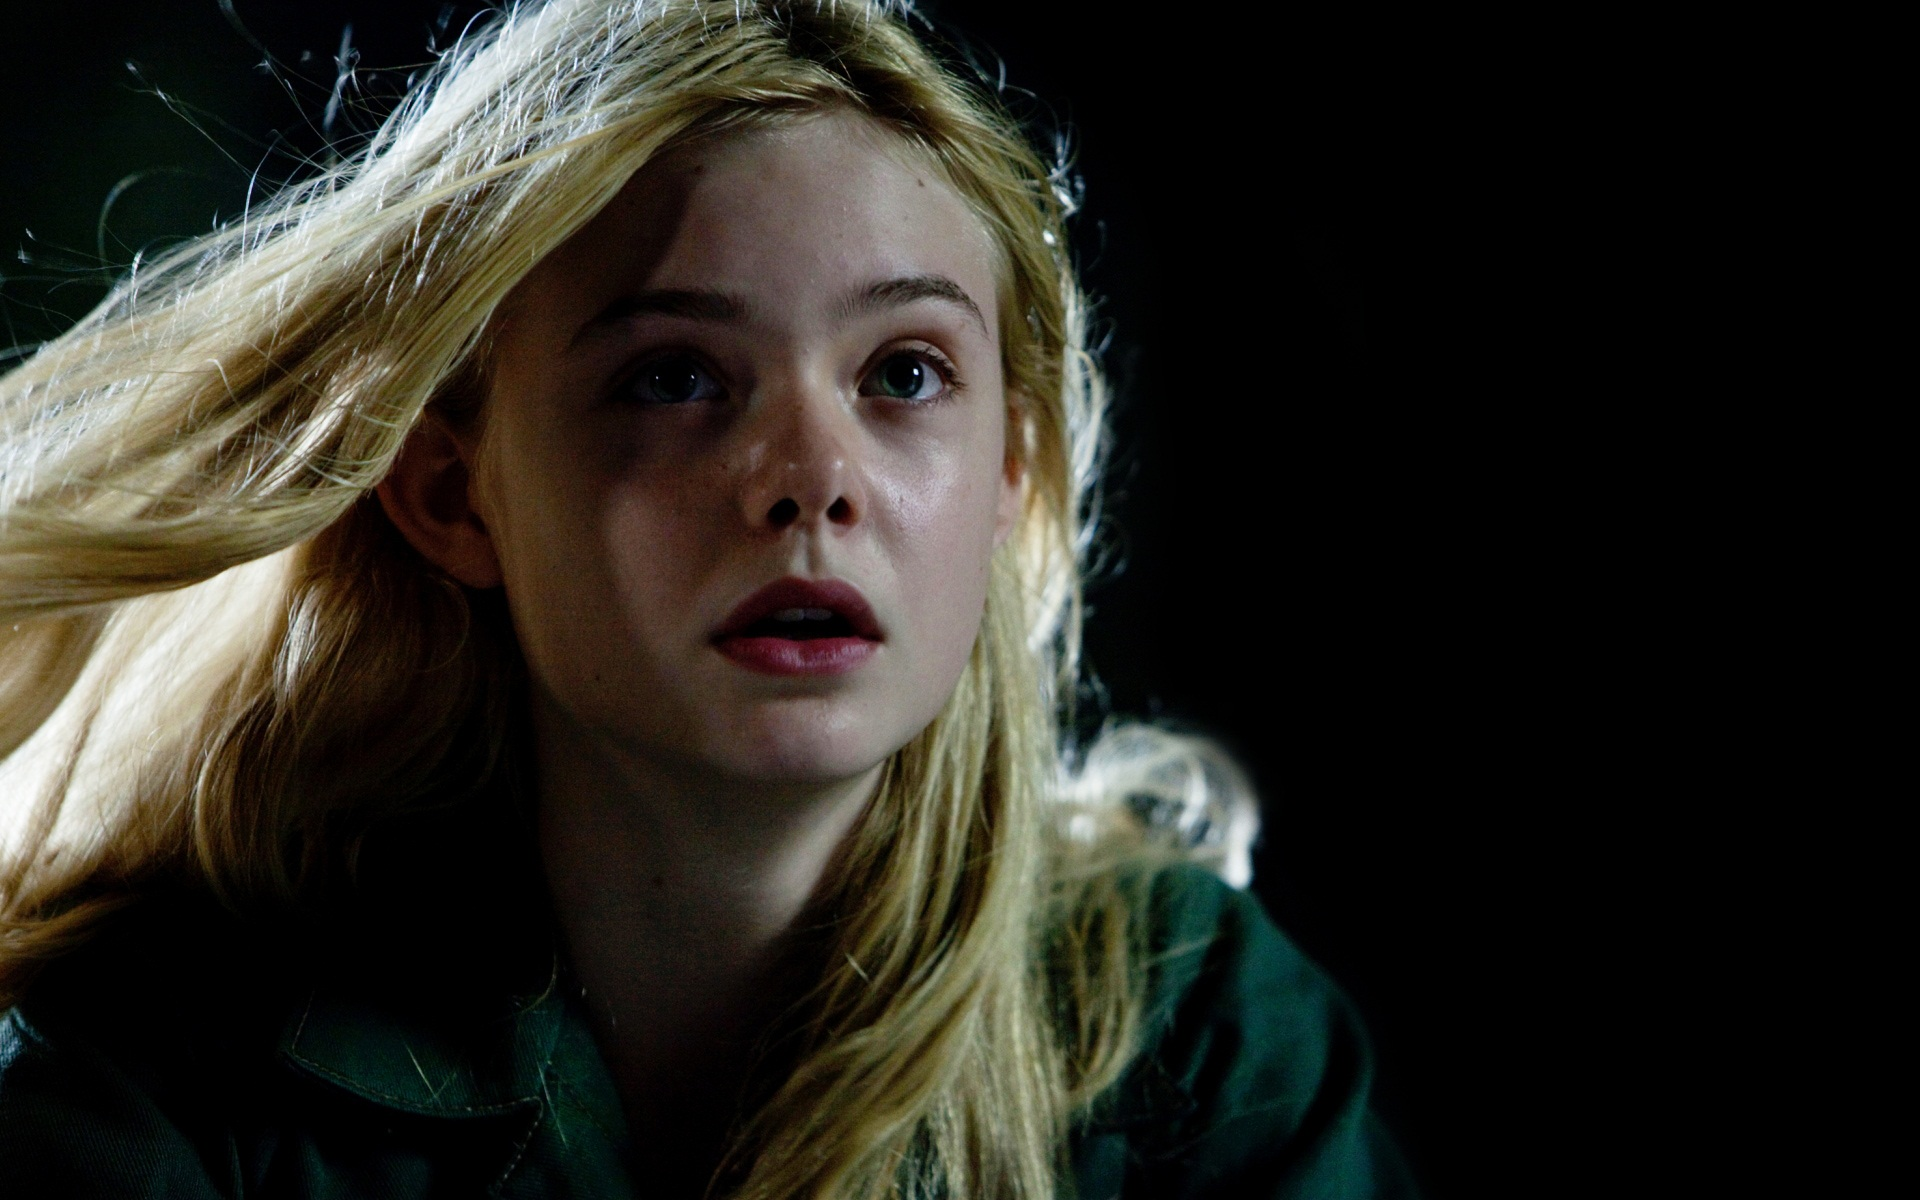 Elle Fanning in Super 8 979.07 Kb